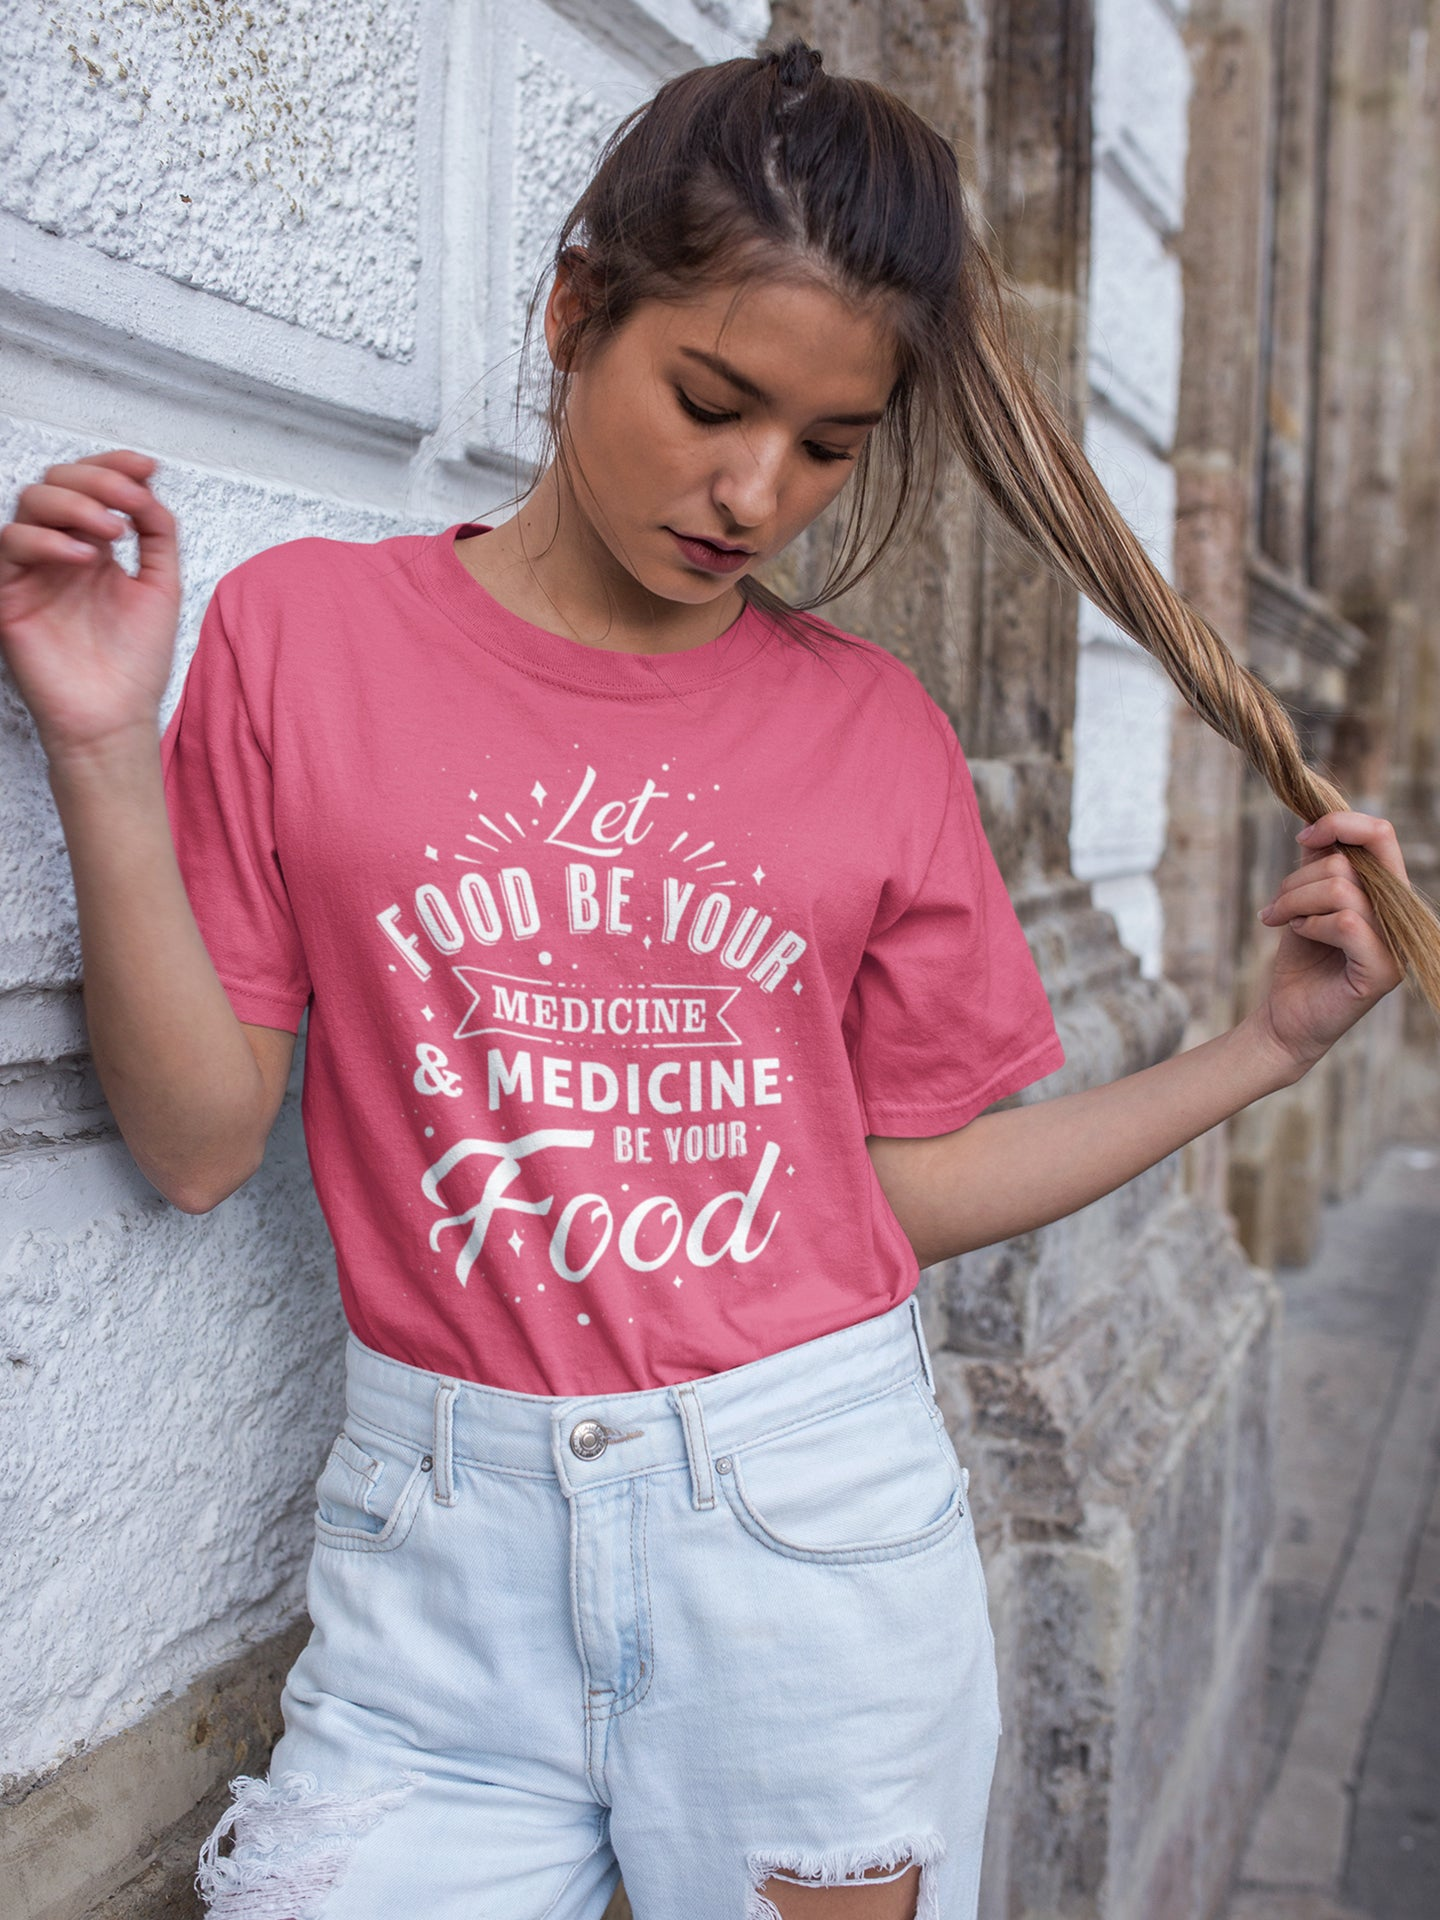 Let food be your medicine - Vegan t-shirt